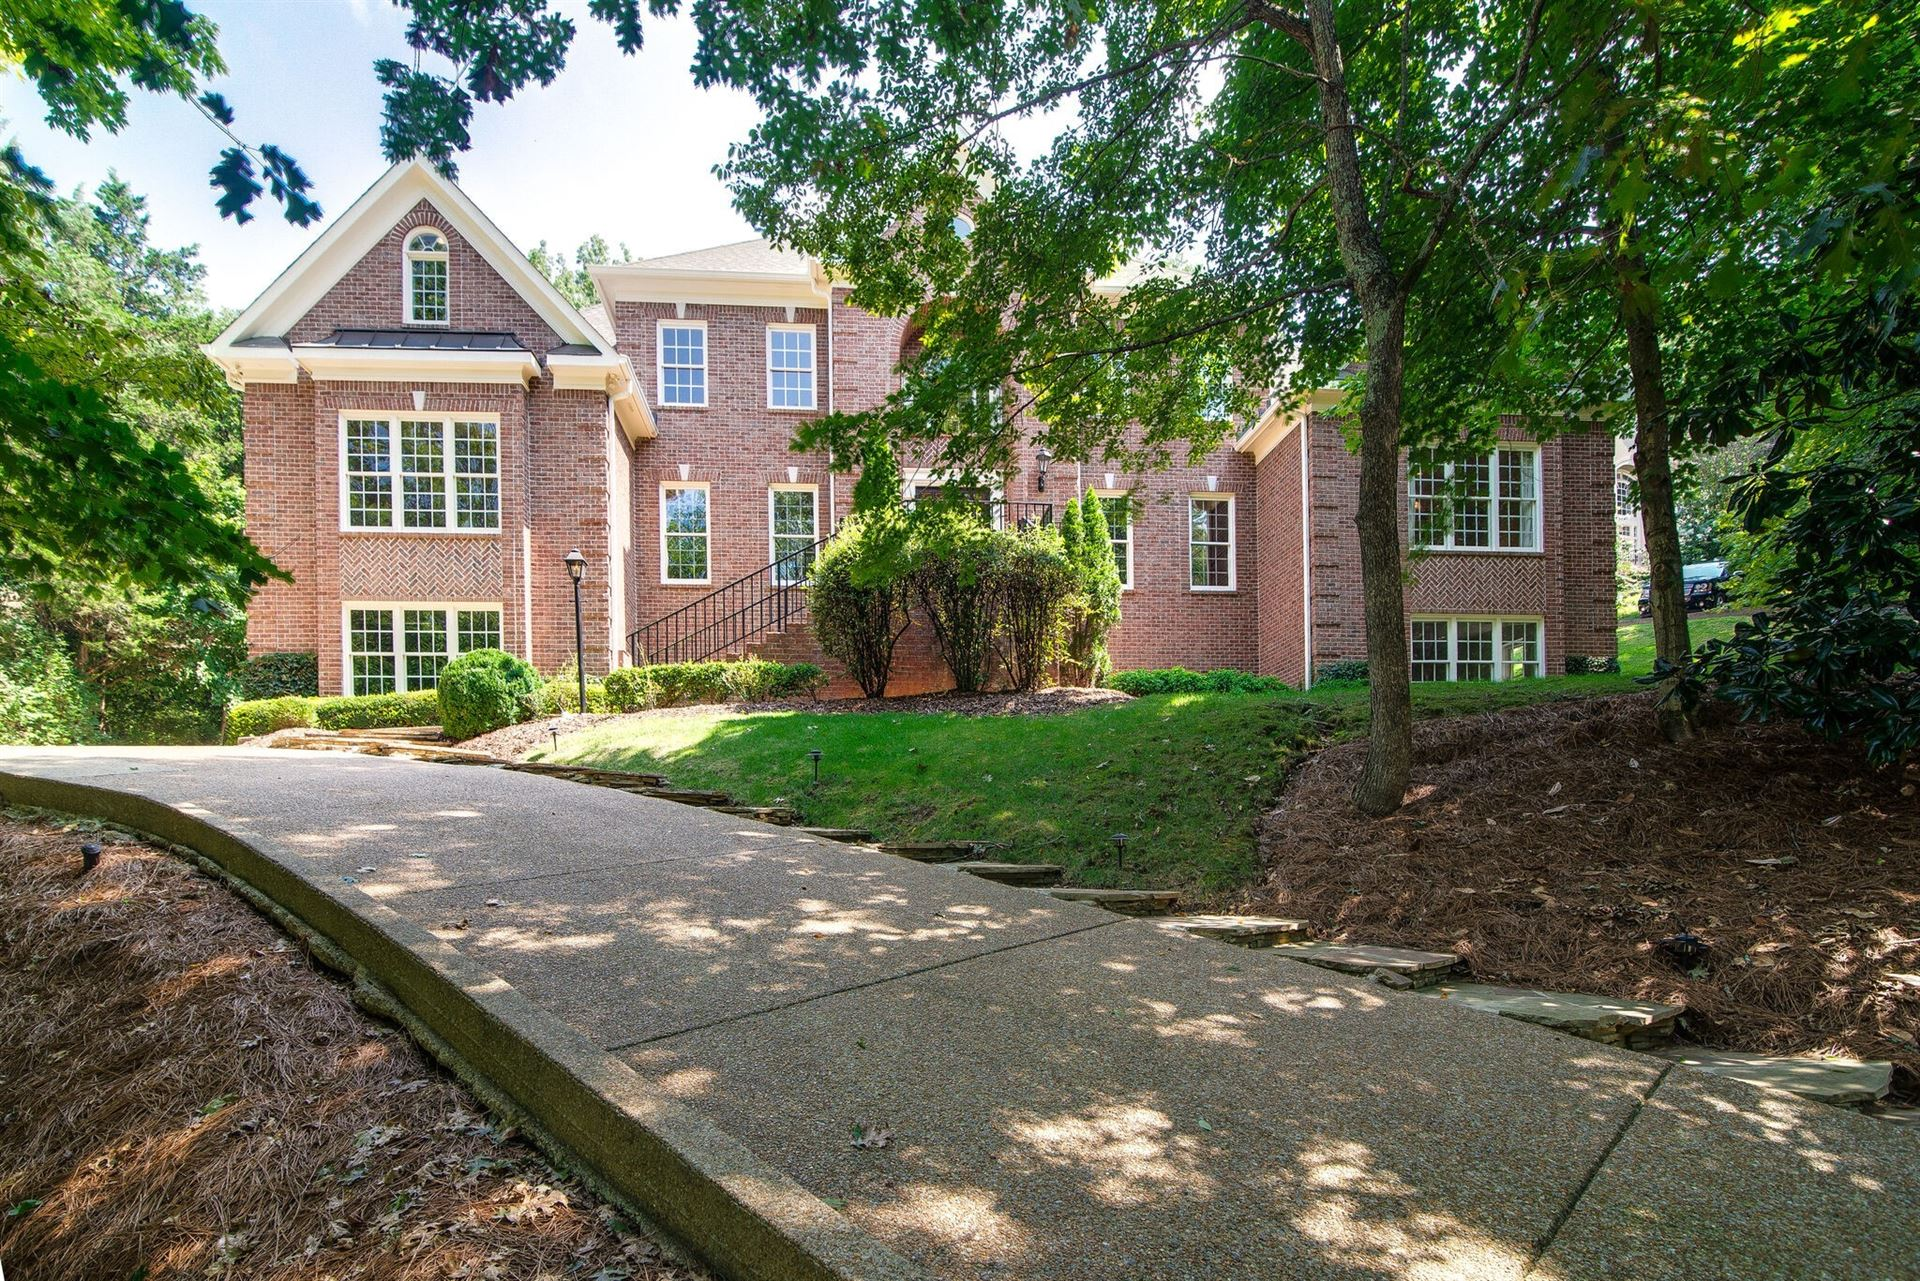 Photo of 558 Grand Oaks Dr, Brentwood, TN 37027 (MLS # 2291529)